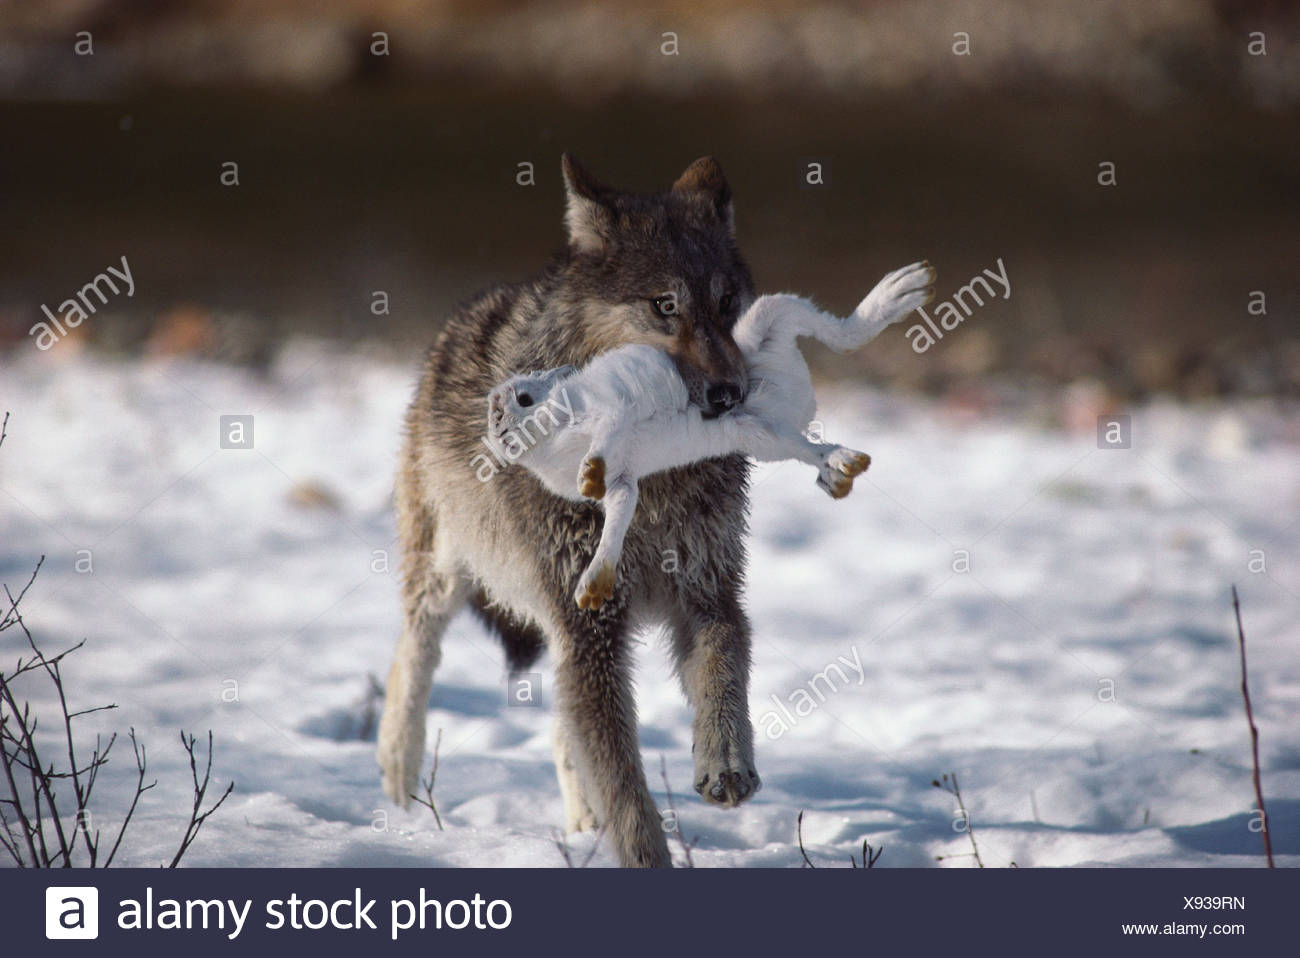 Wolf carrying white hare - Stock Image